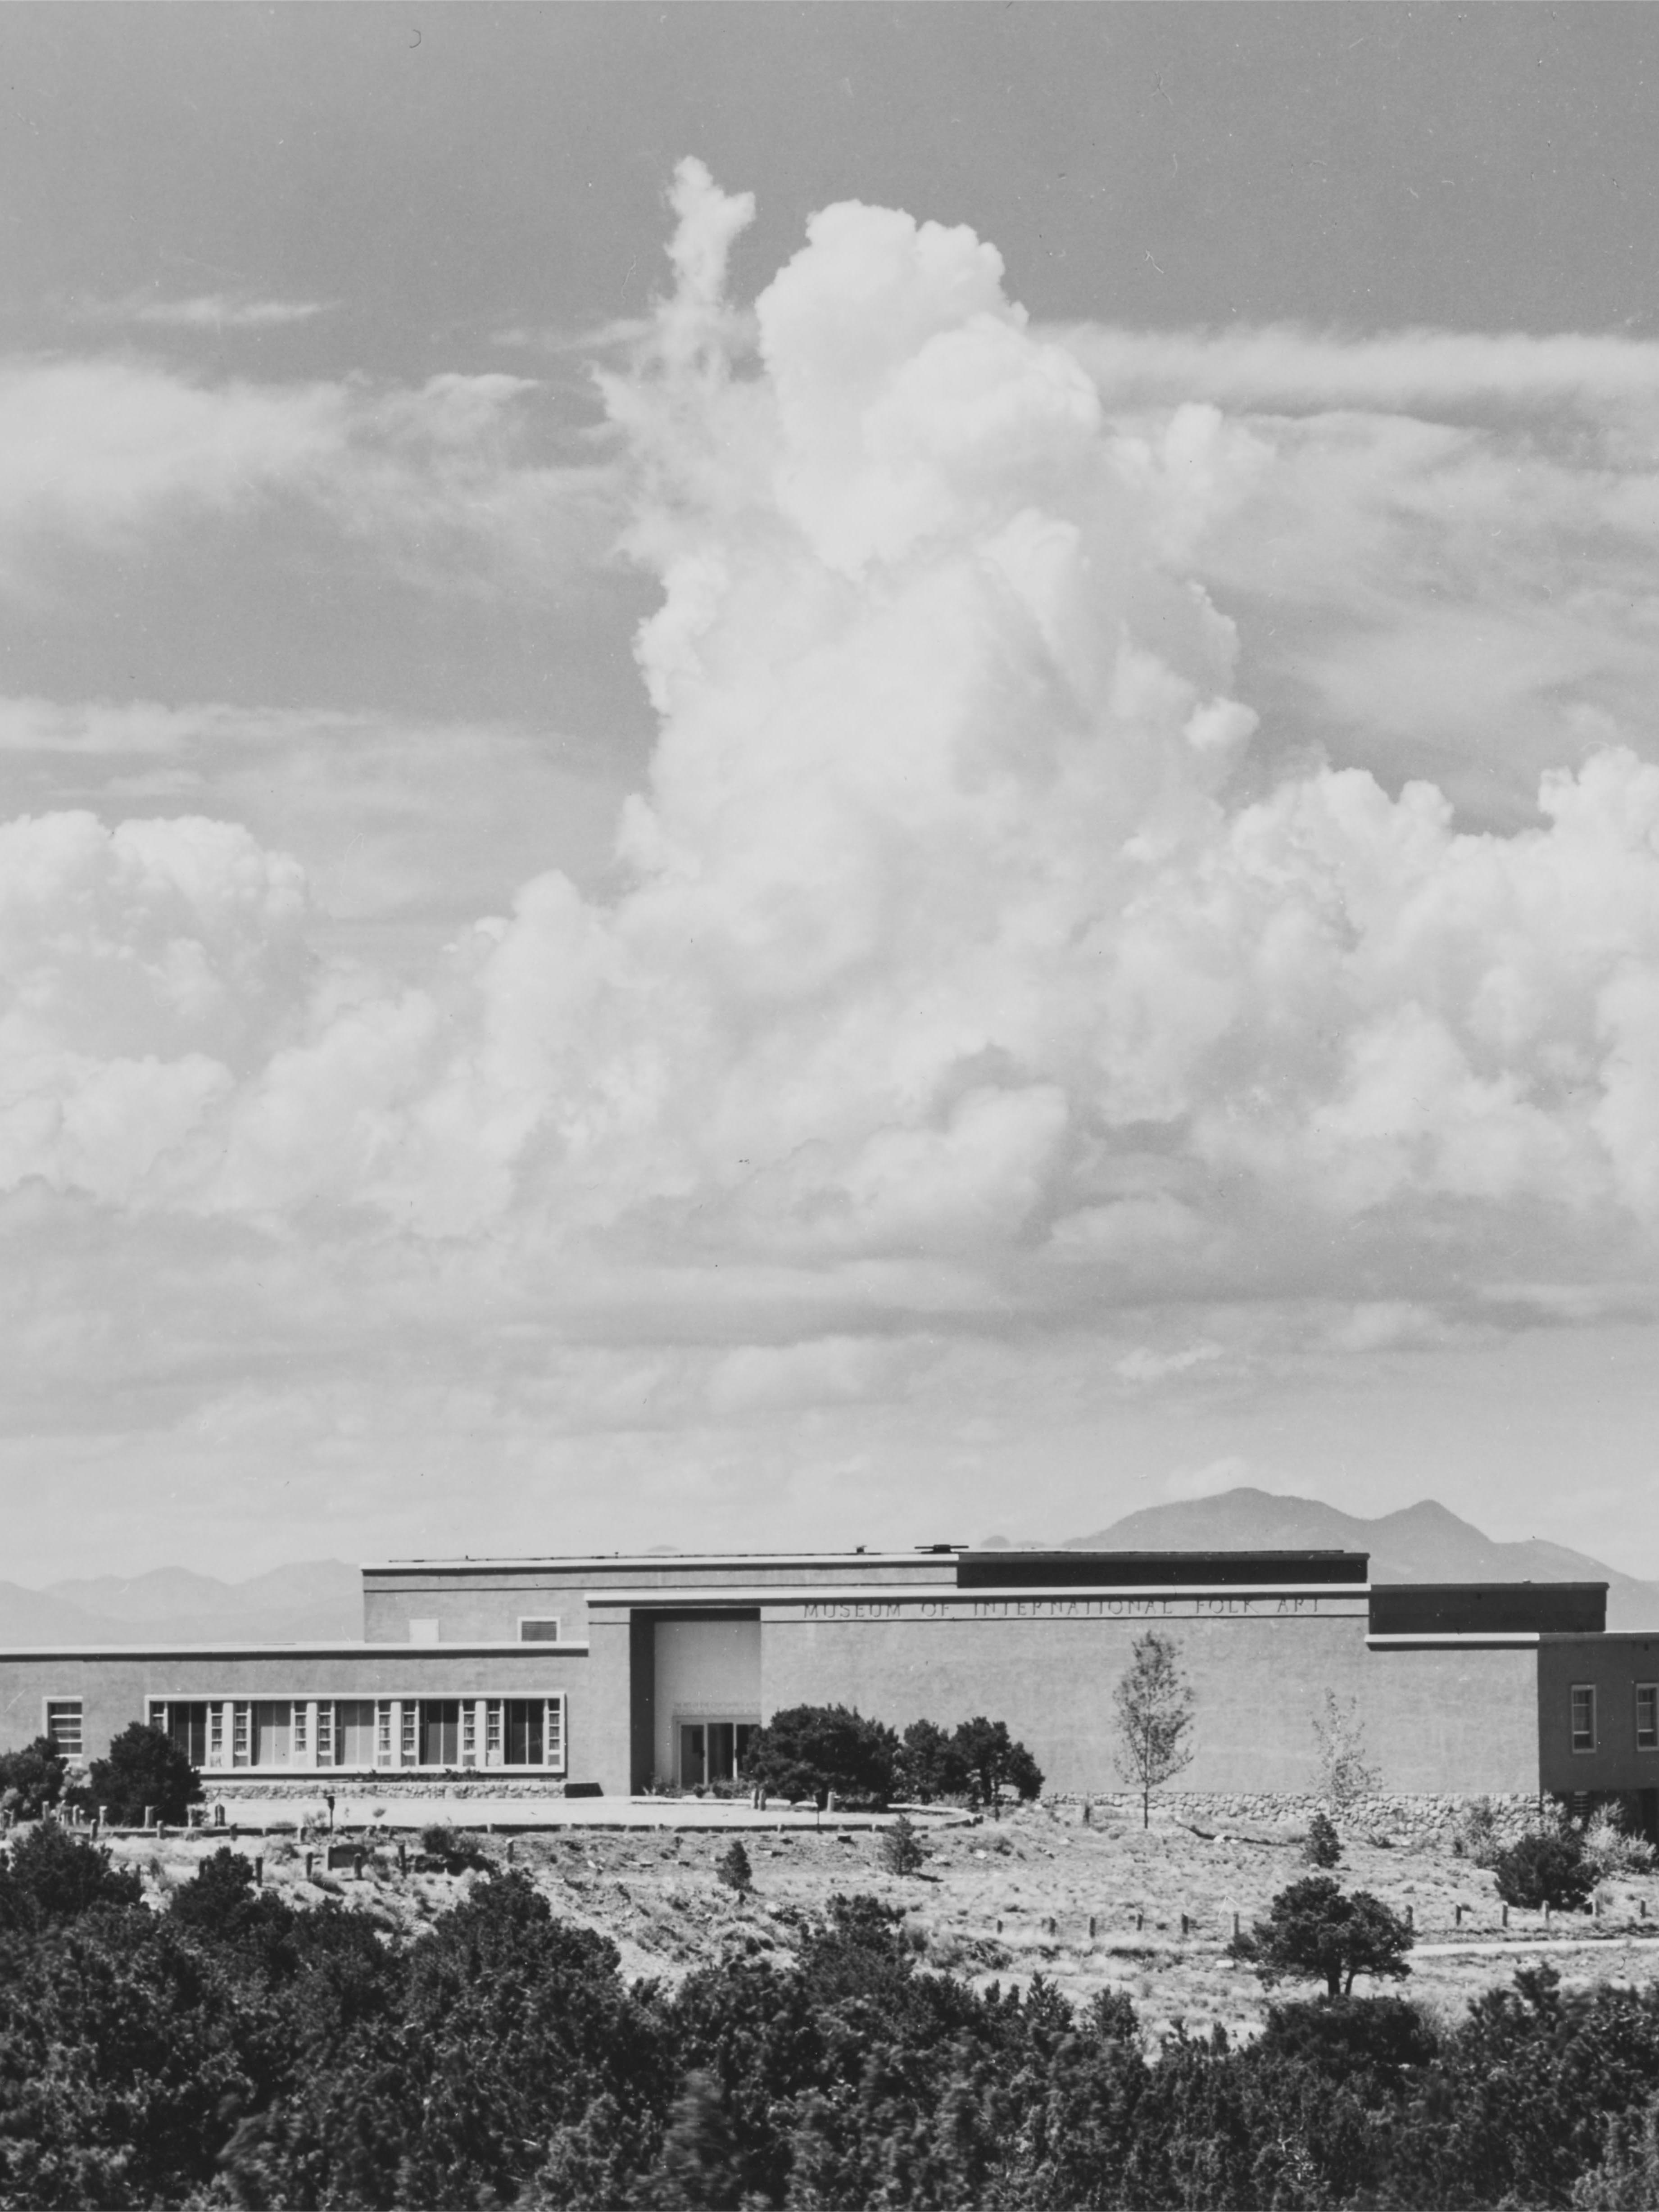 Cropped version of Blair Clark's digital re-photographed image of a Laura Gilpin print of the Museum shortly before opening day in 1953 - We had to crop this to make it fit in the blog space, but the original appears in the main story.